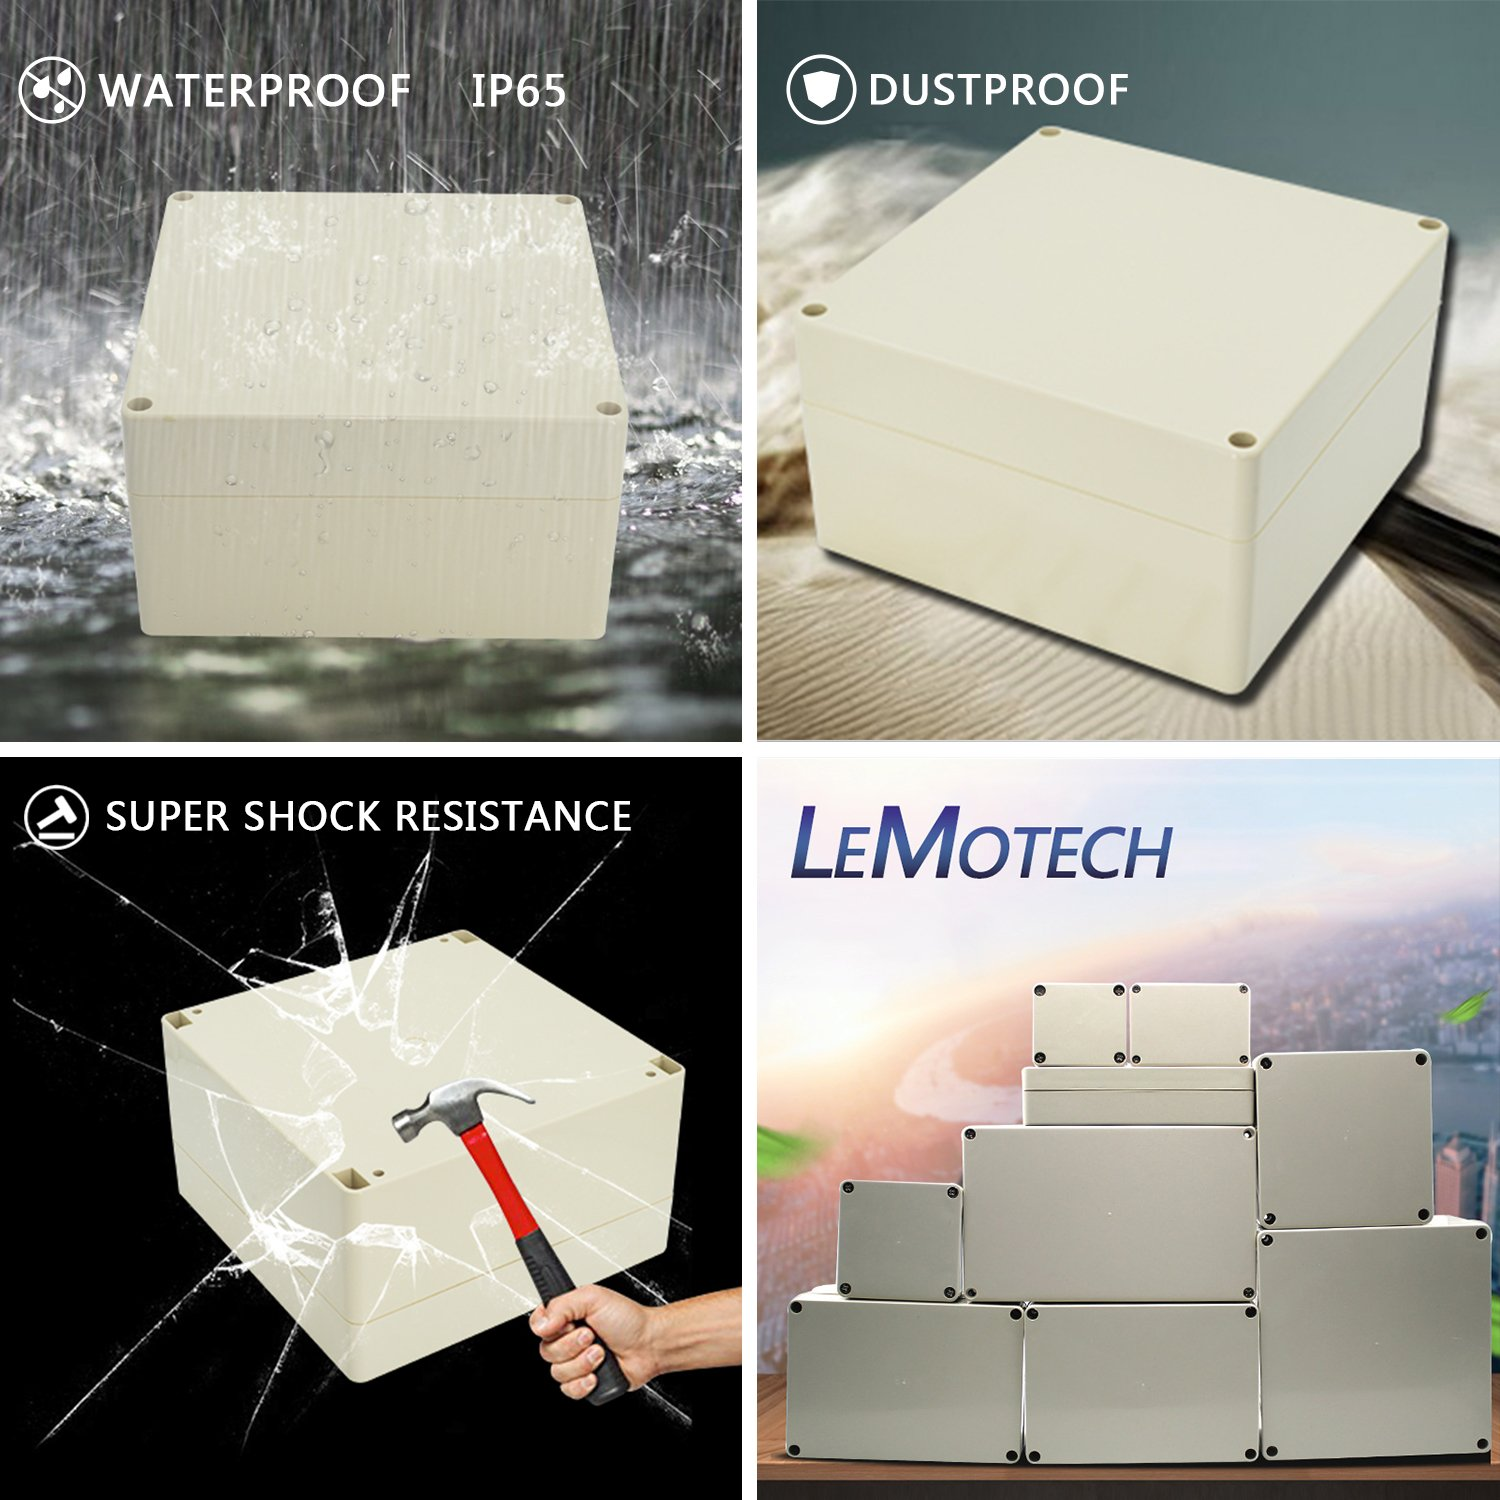 LeMotech Waterproof Dustproof IP65 ABS Plastic Junction Box Universal  Electric Project Enclosure Gray 15 x 10 2 x 4 13 inch(380 x 260 x 105 mm)